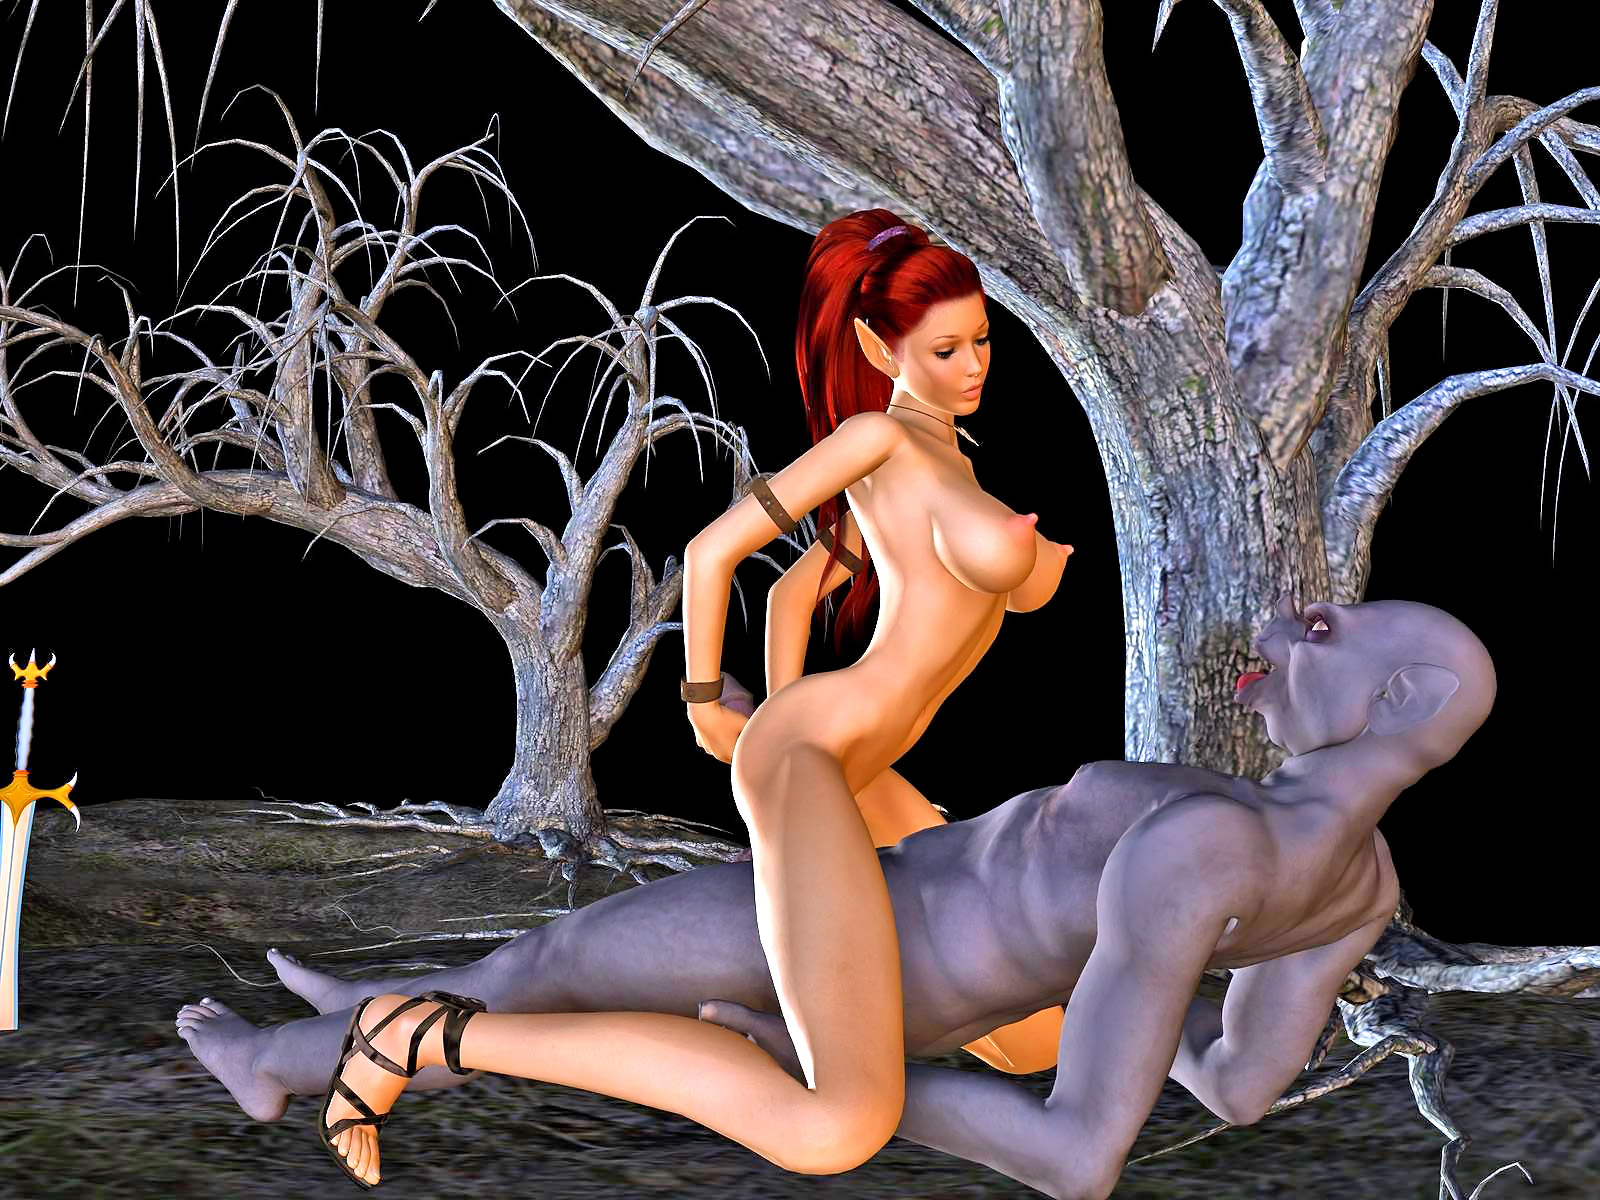 Vampire sex images pictures sex gallery